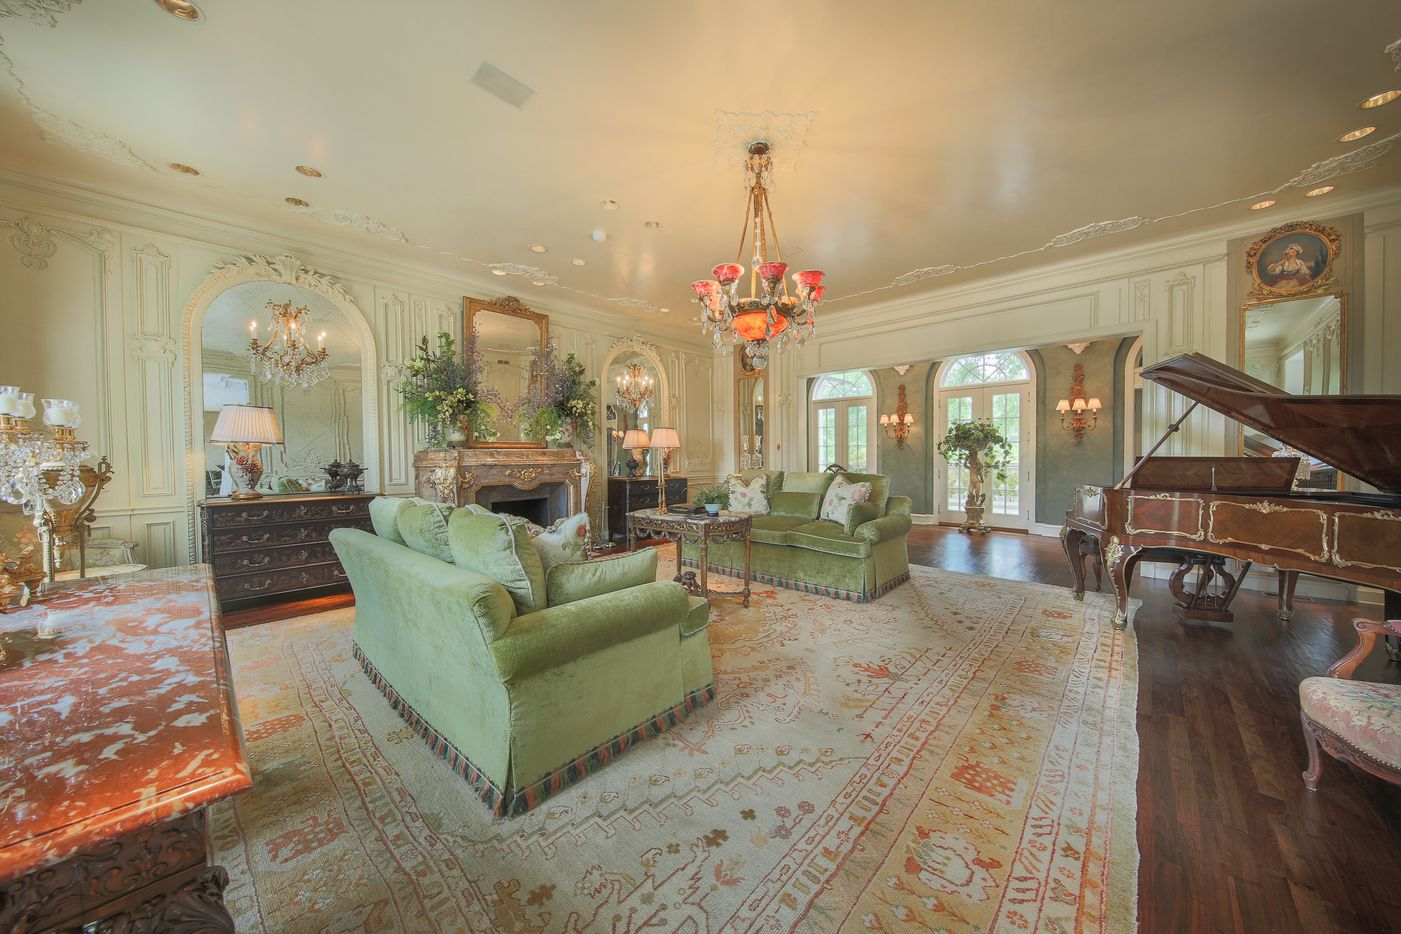 The Pilgrim Estate has six bedrooms and 10 baths.